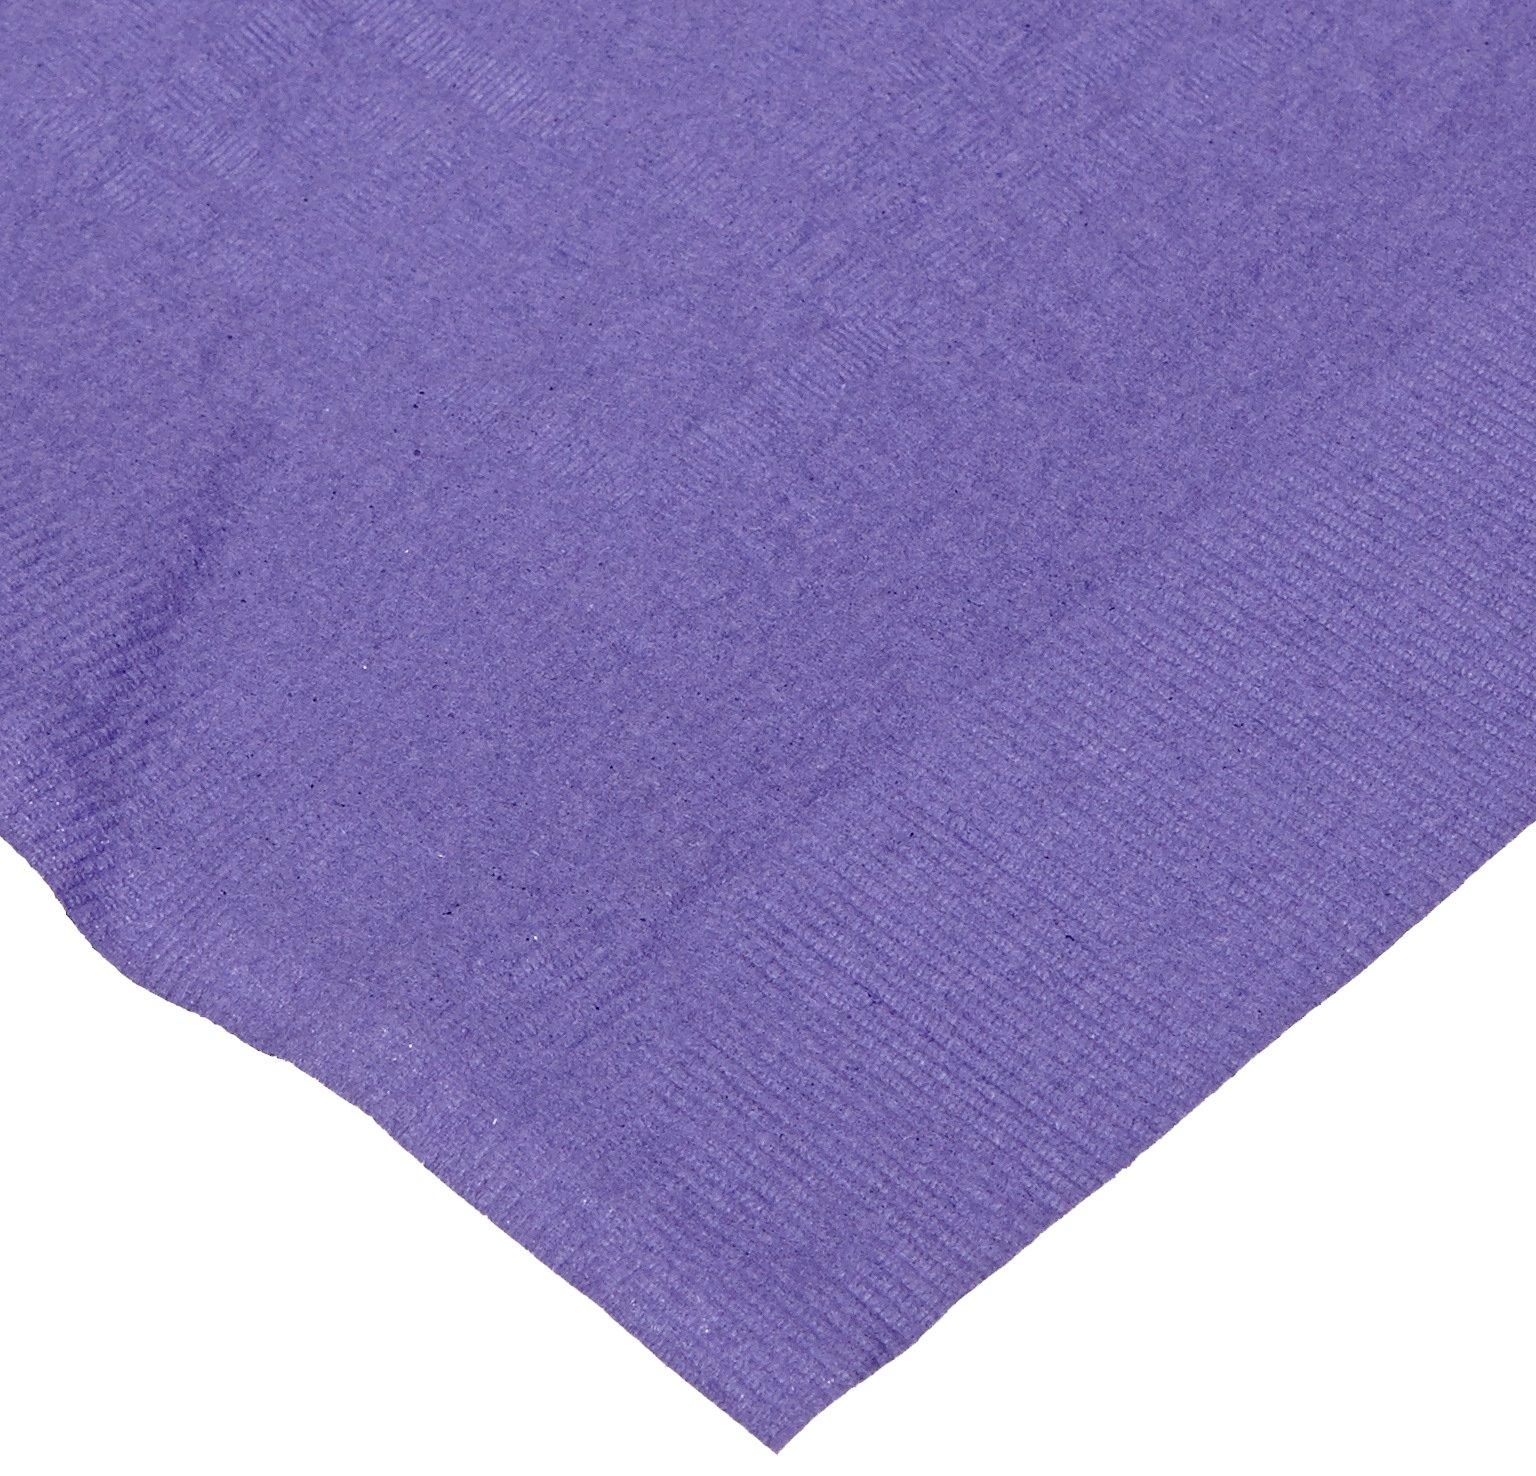 Hoffmaster 220639 Tissue/Poly Tablecover, 3 Ply, 108'' Length x 54'' Width, Purple (Case of 25)